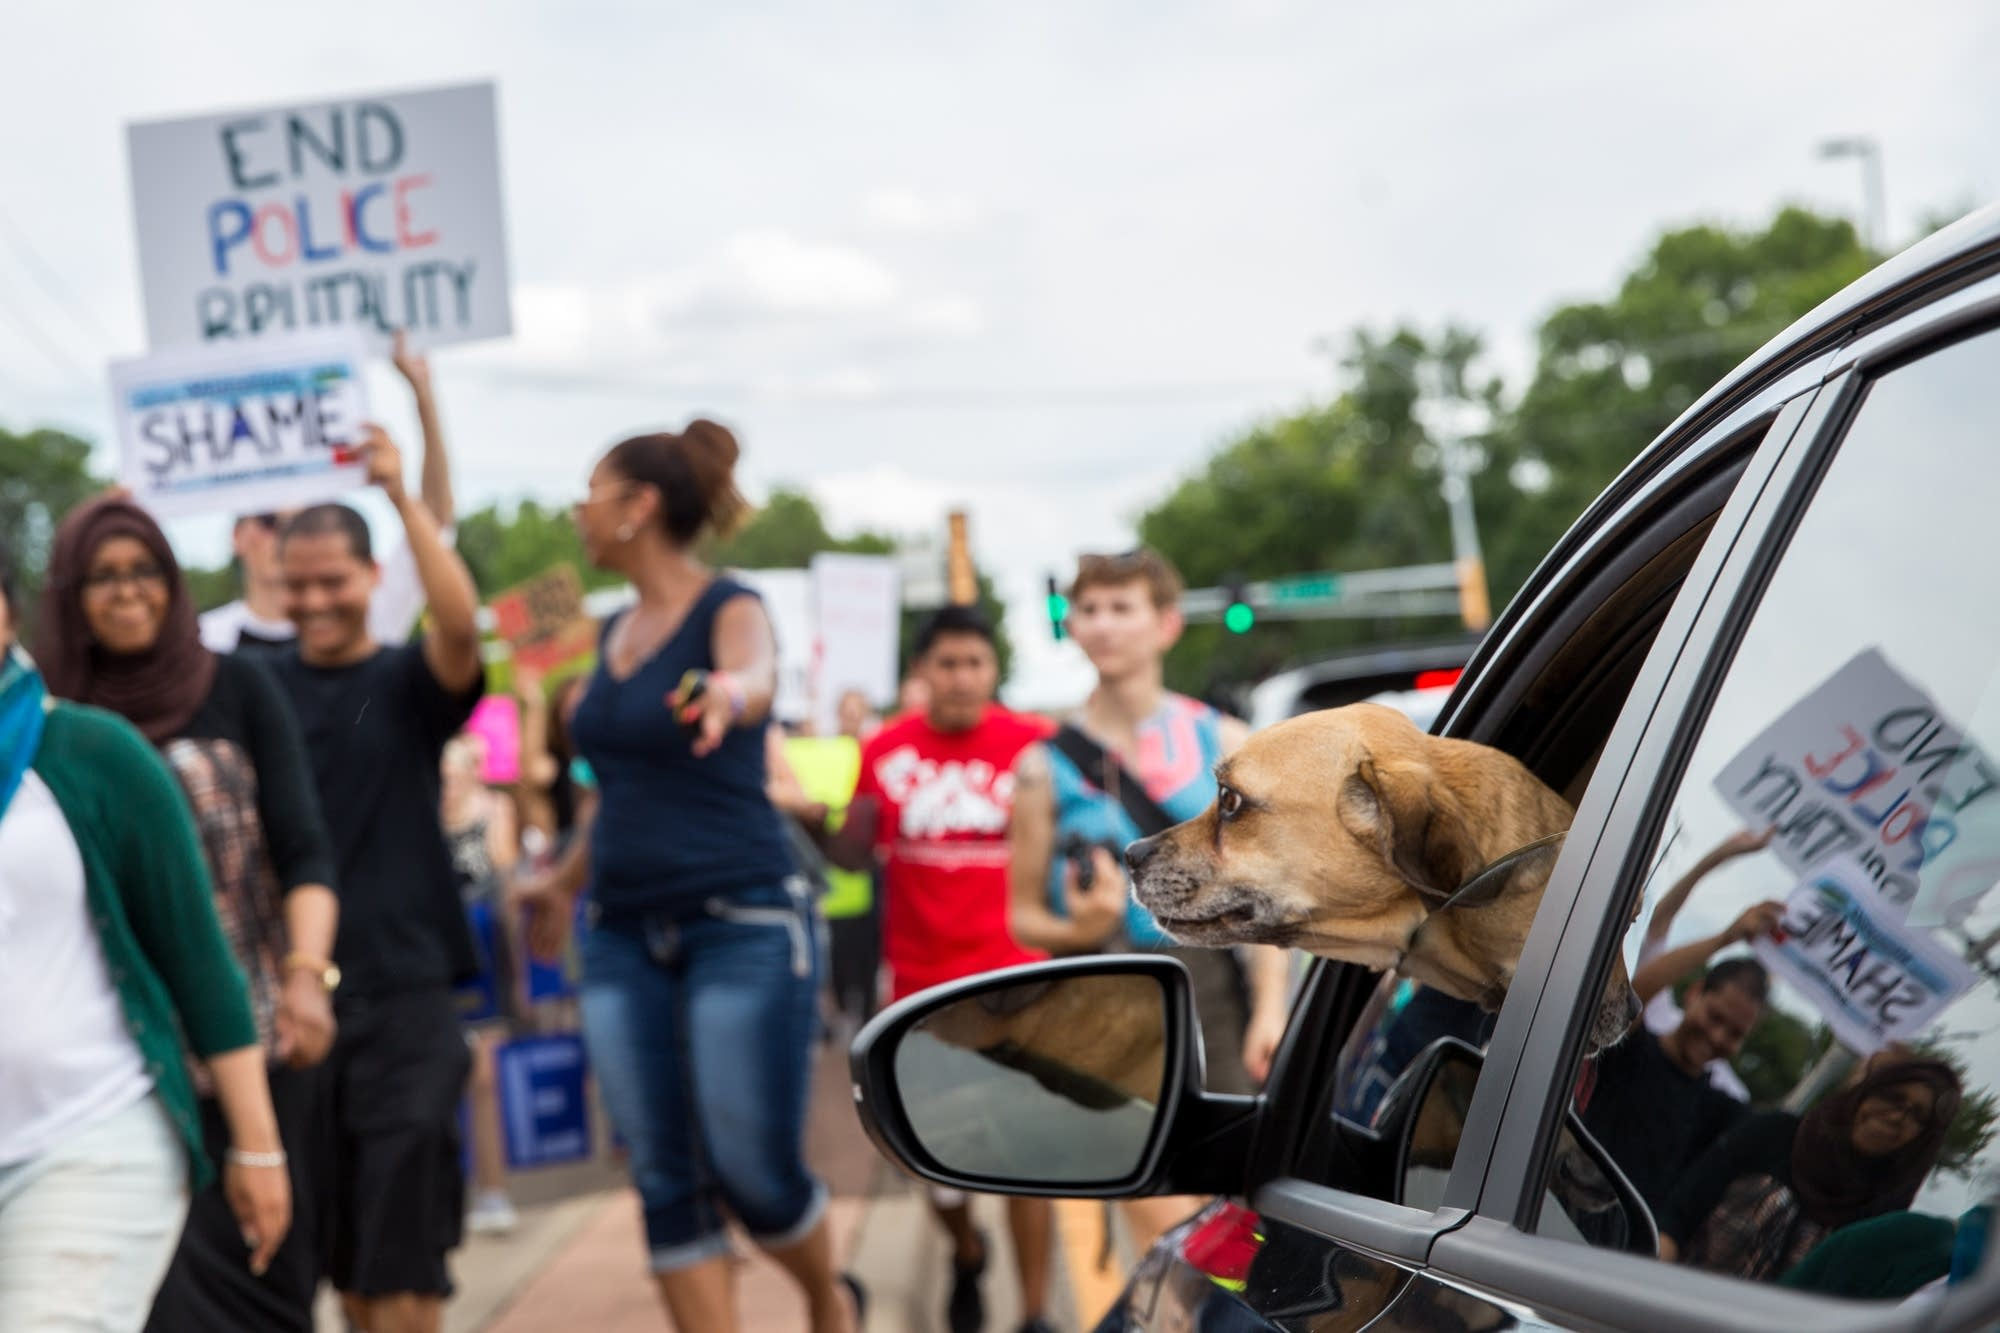 A dog watches protesters.